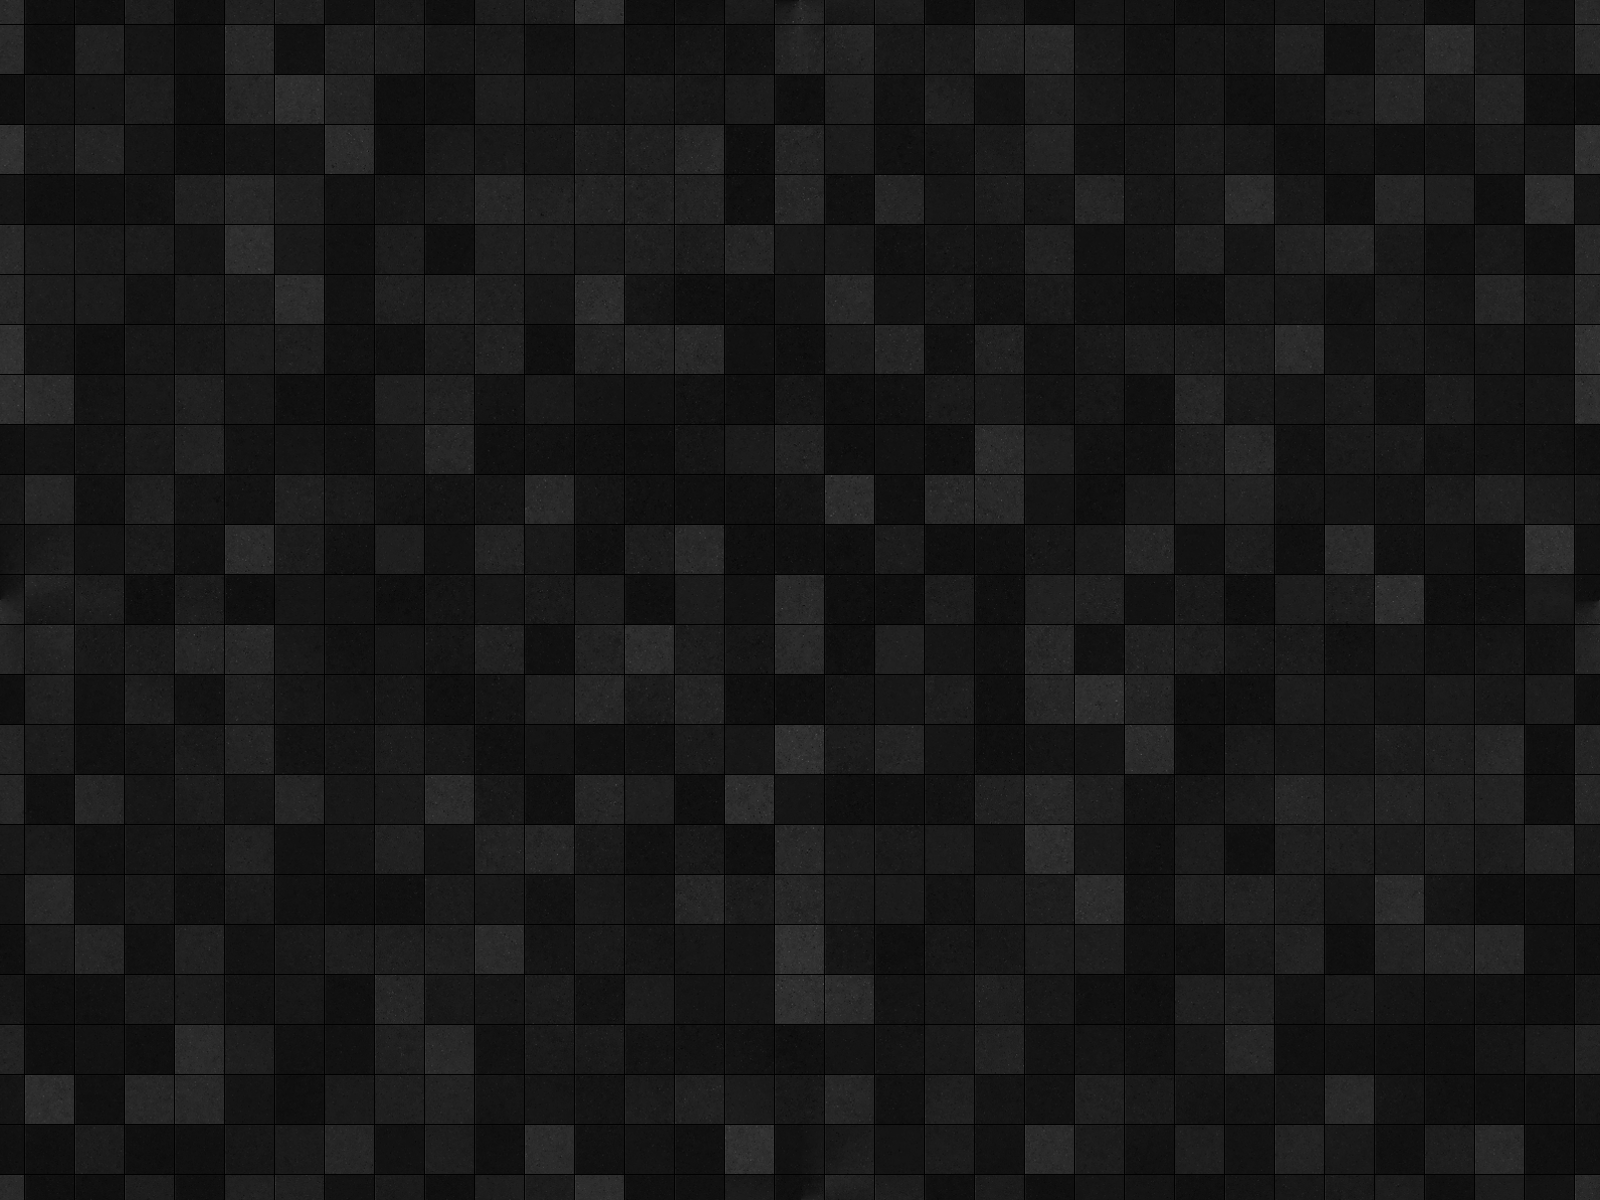 Black tile wallpaper wallpapersafari for Black 3d tiles wallpaper